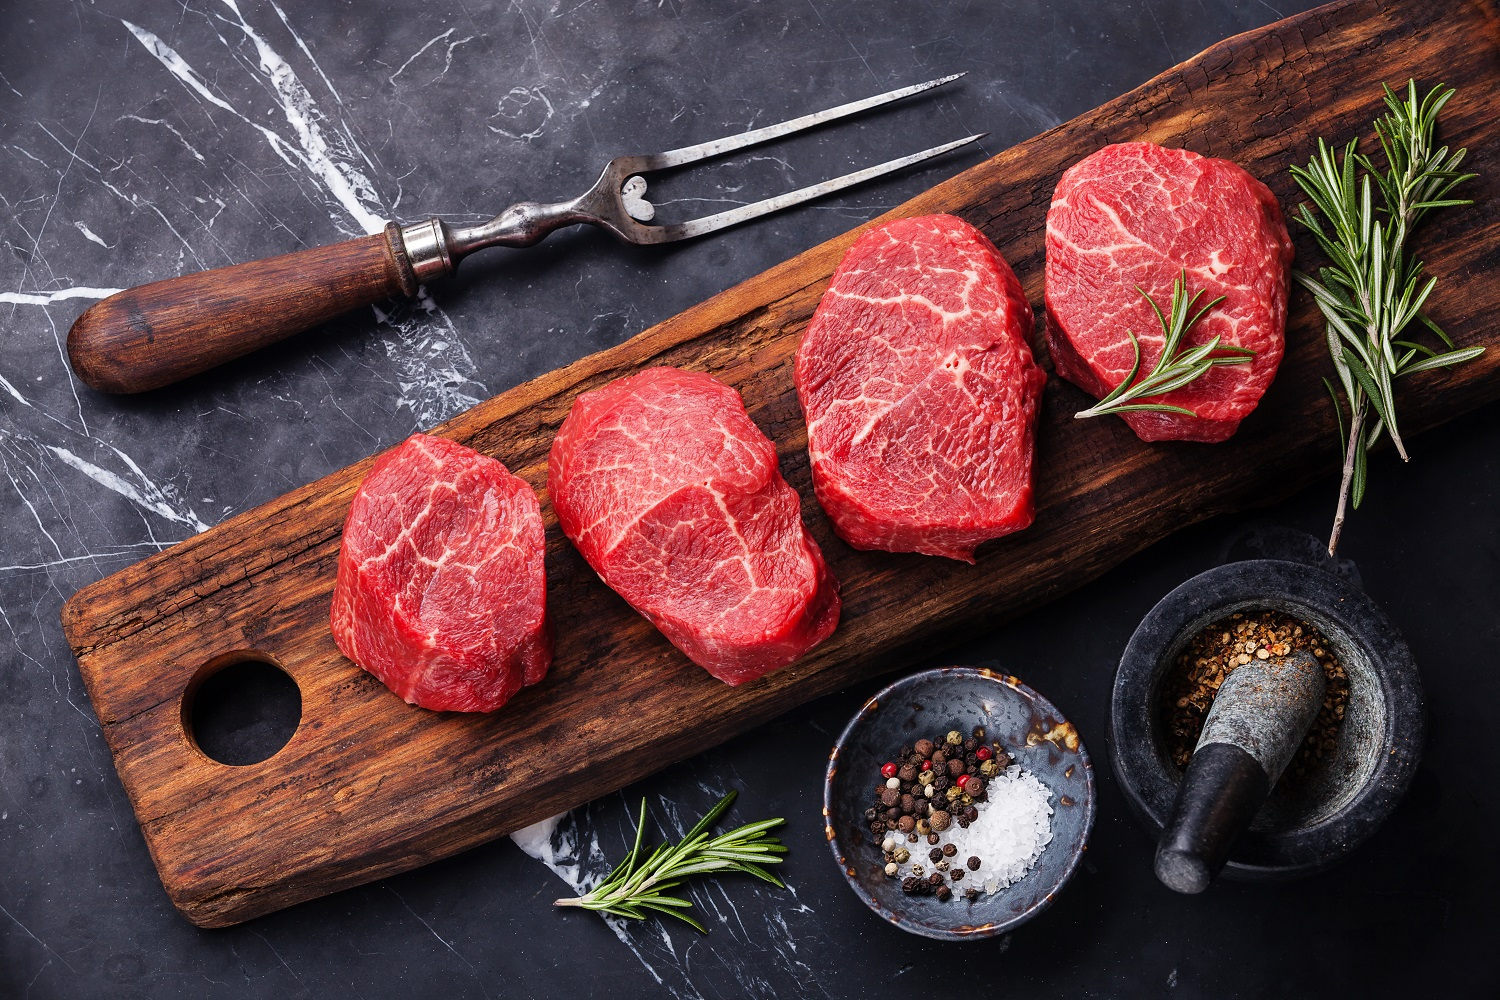 South-Africa-is-the-largest-meat-producer-in-Africa